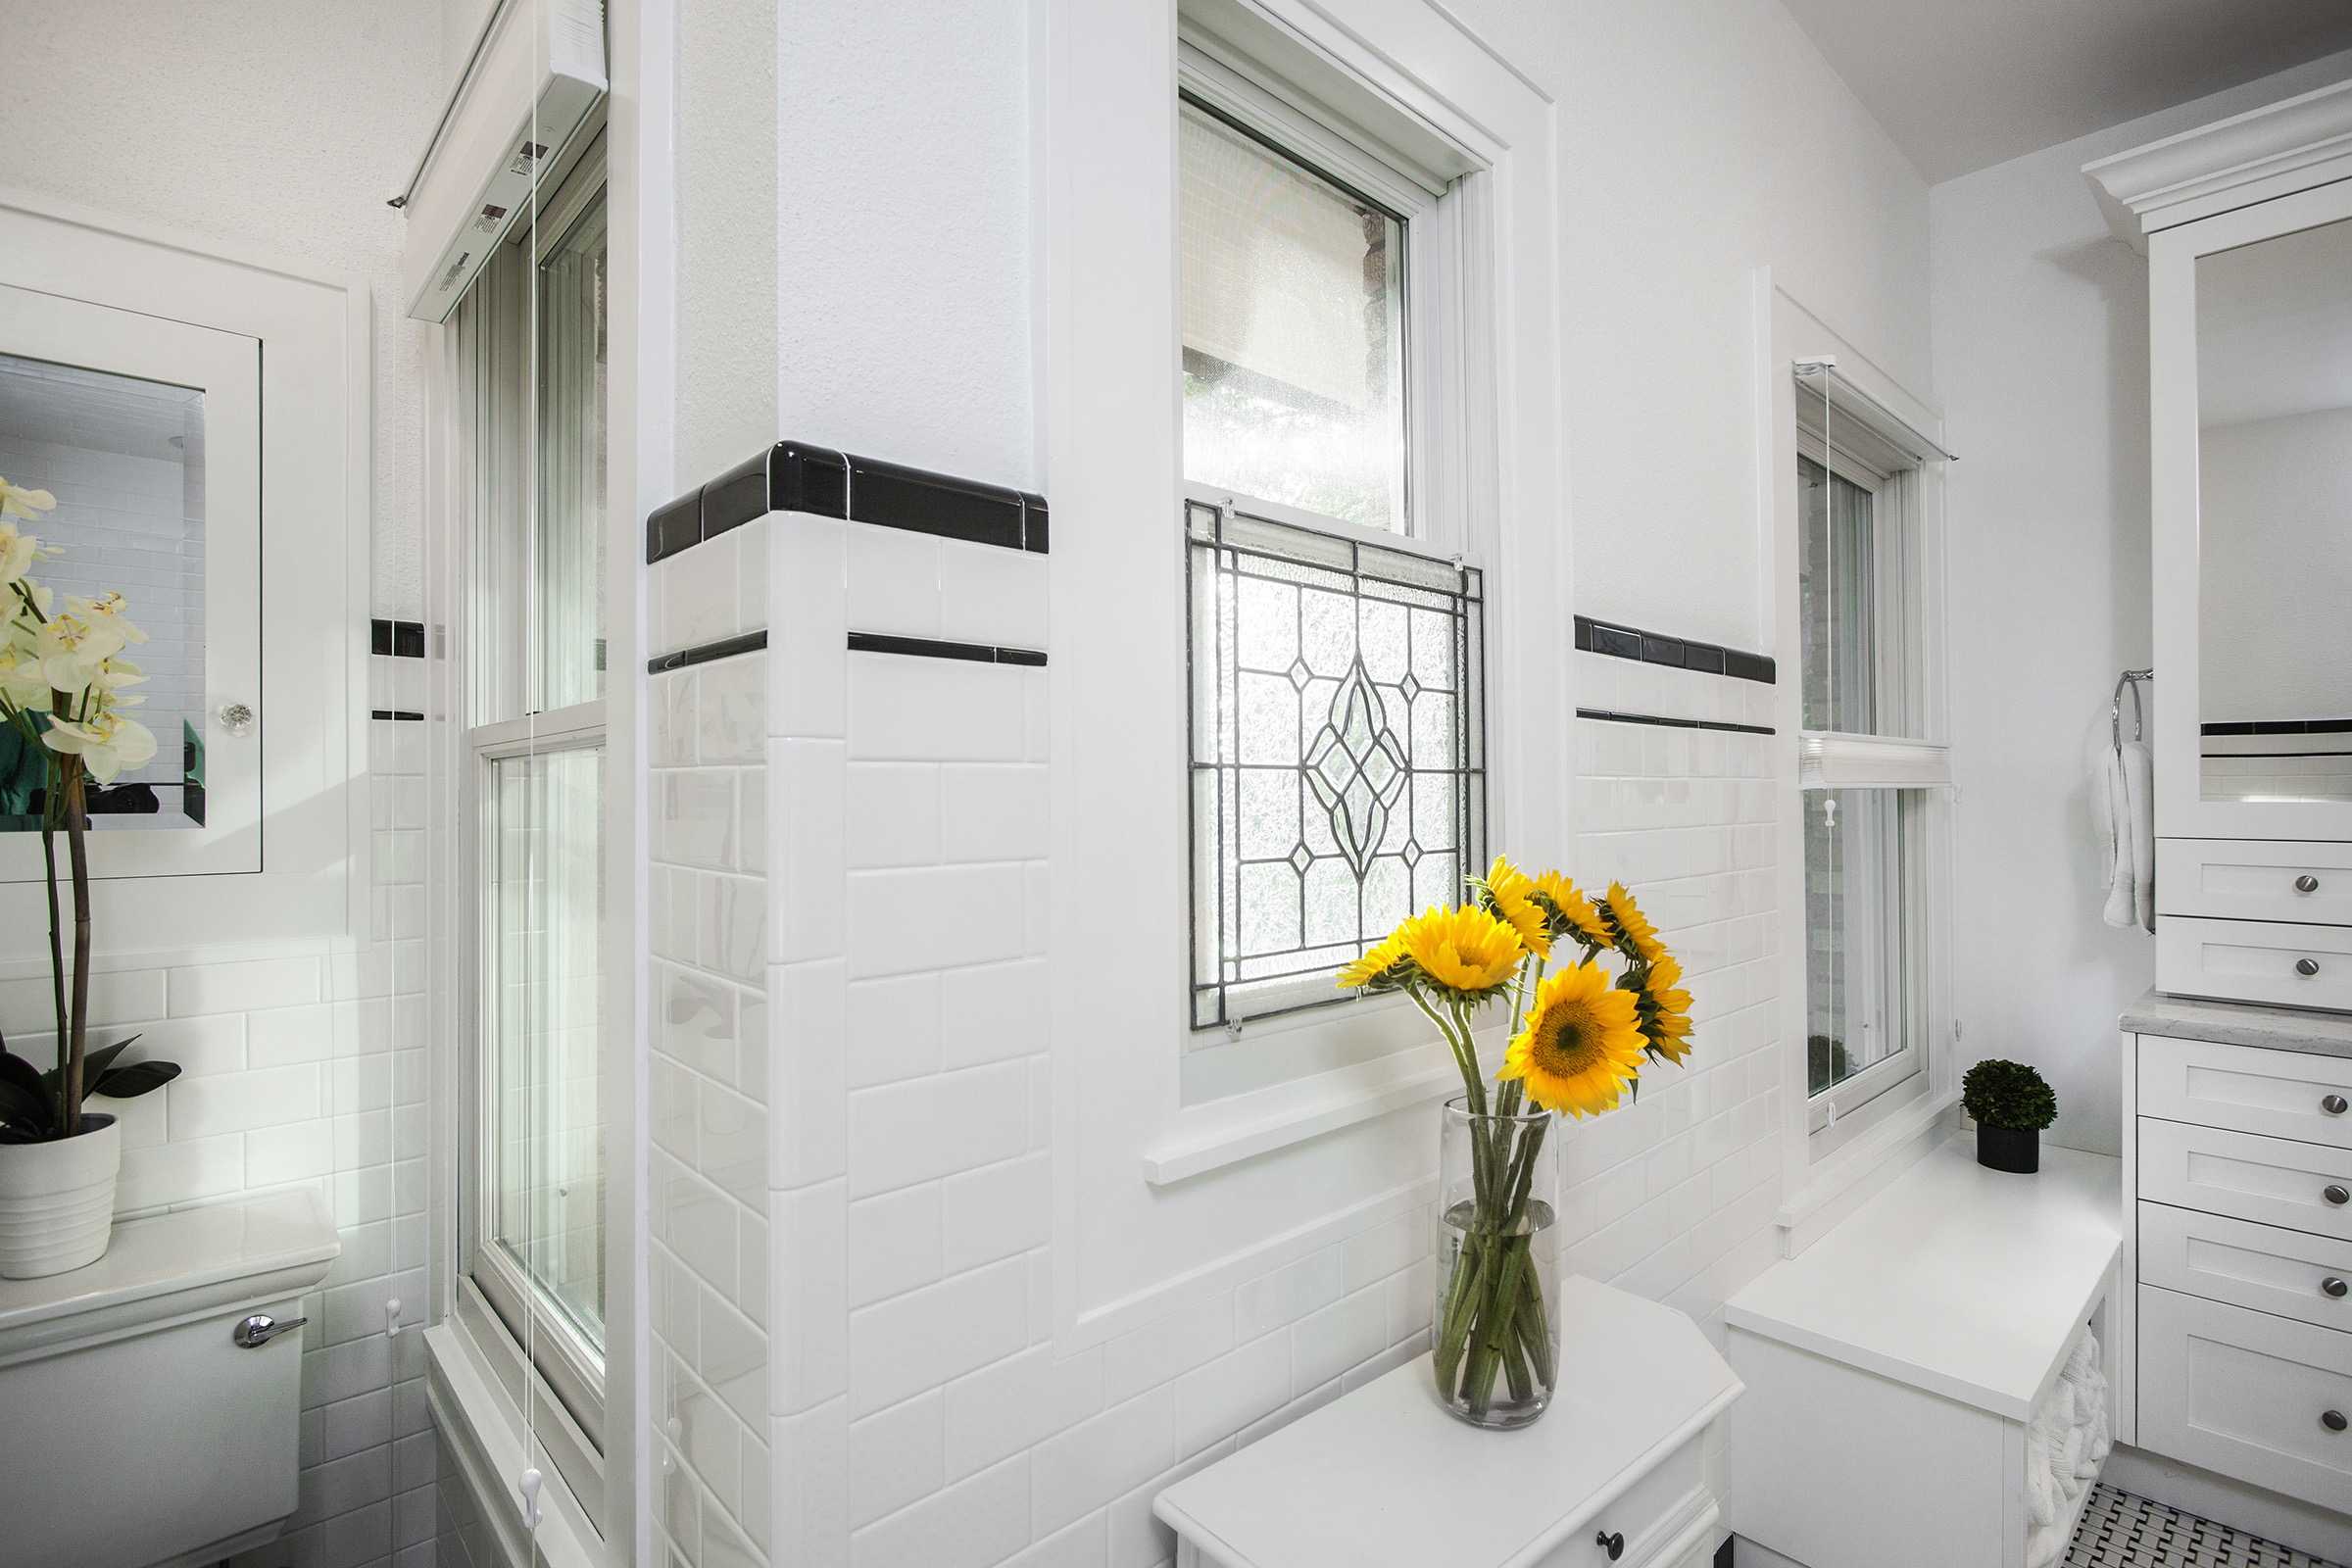 Accessories And Sunflowers For Modern Bathroom Decor (Image 3 of 14)